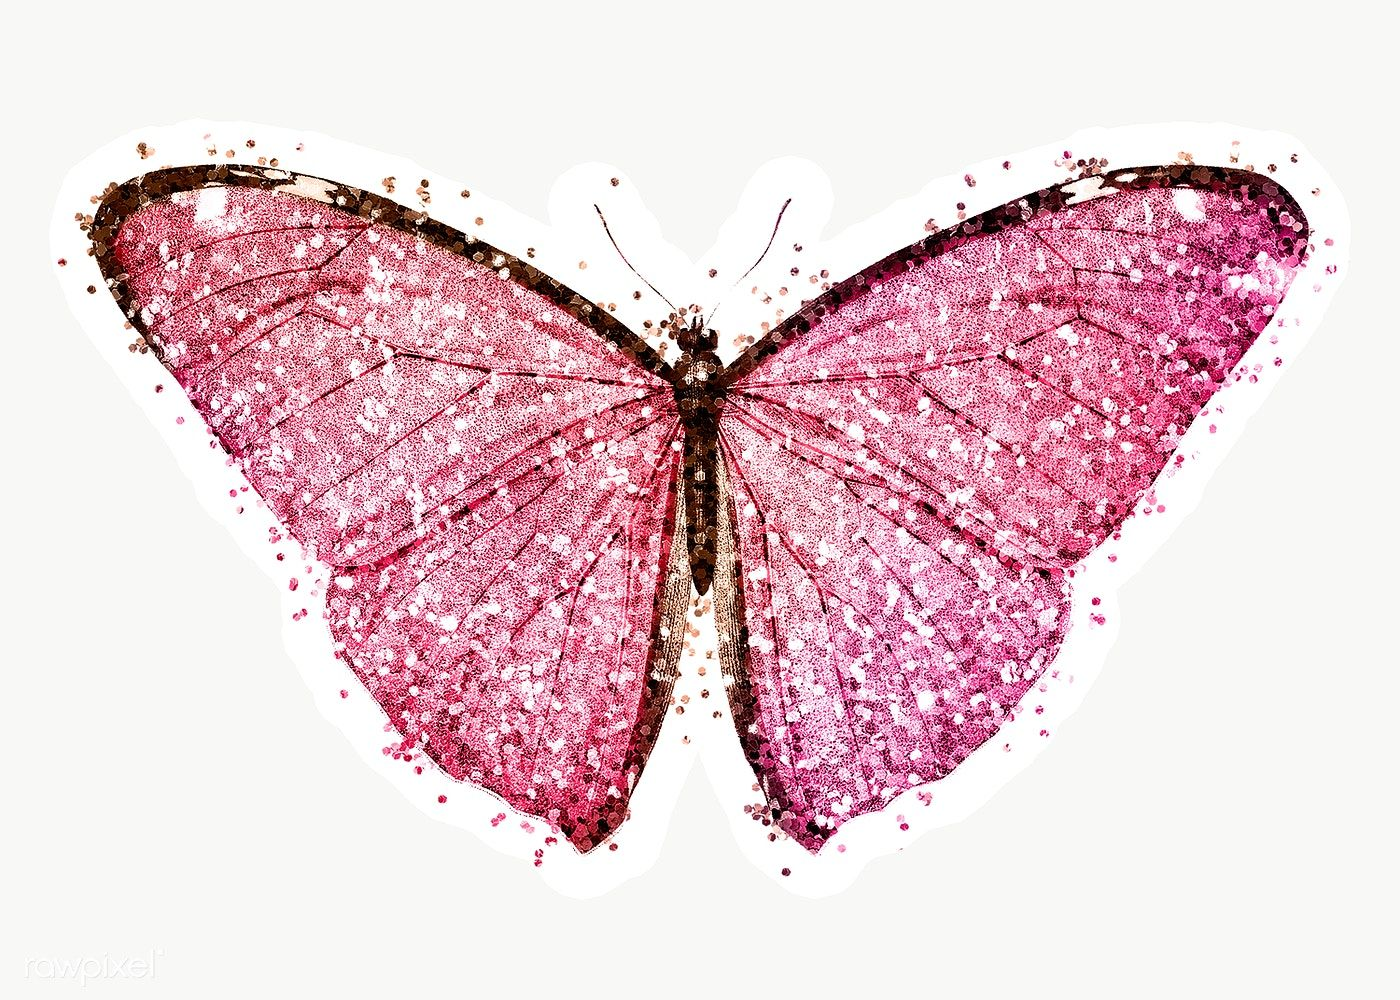 Glitter Pink Butterfly Sticker With White Border Free Image By Rawpixel Com Ployploy Pink Butterfly Butterfly Illustration Butterfly Design